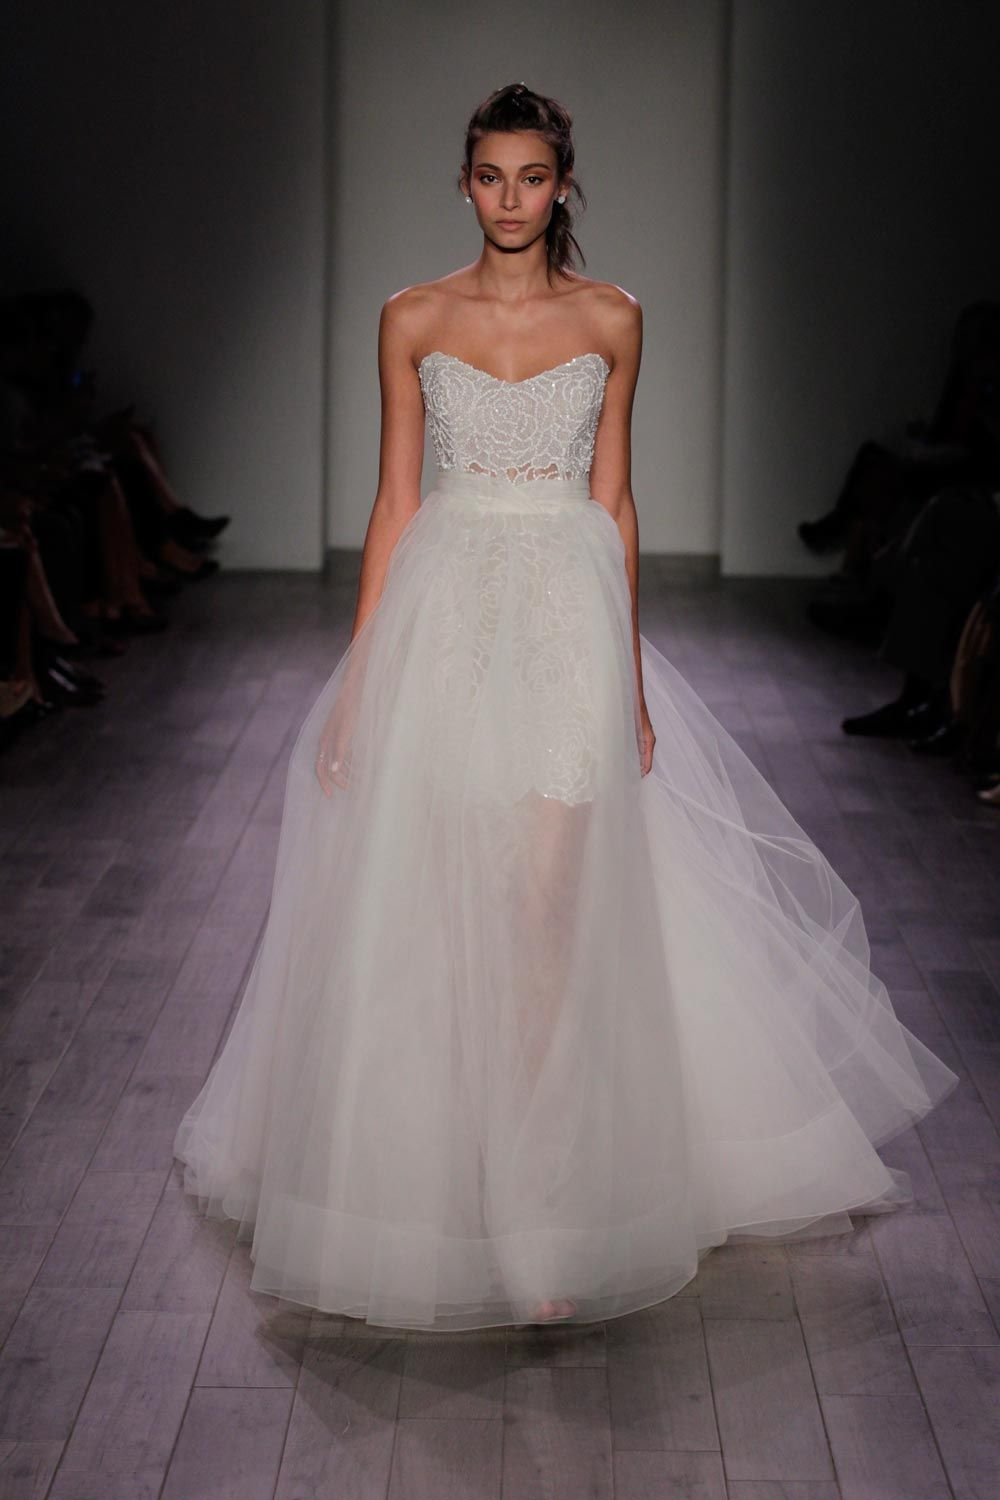 8613 by Jim Hjelm two in one wedding dress | The Look: TEA LENGTH ...